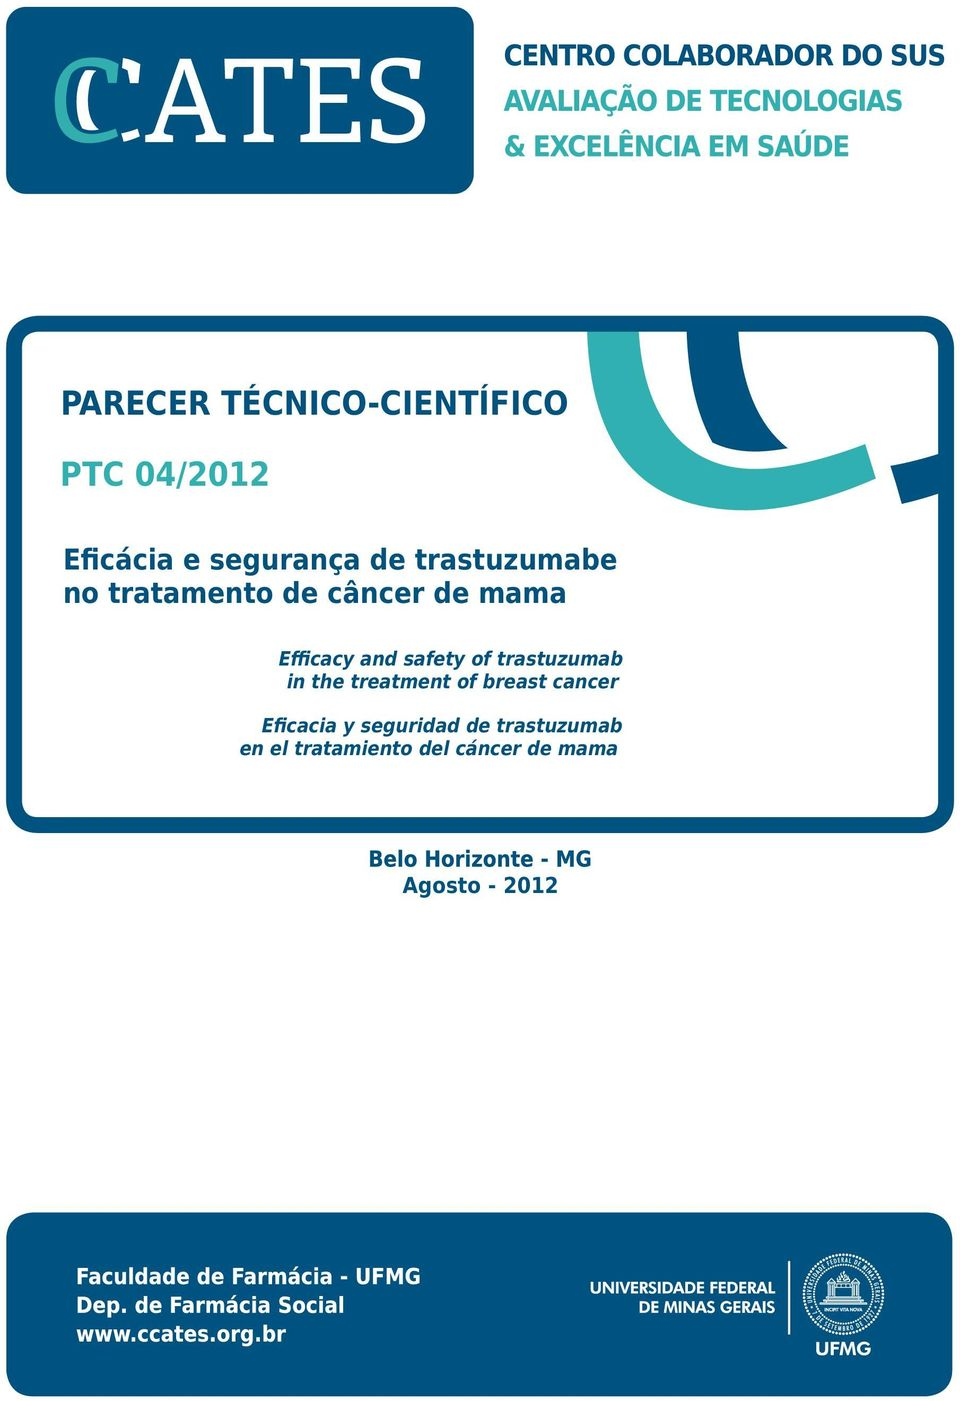 of trastuzumab in the treatment of breast cancer Eficacia y